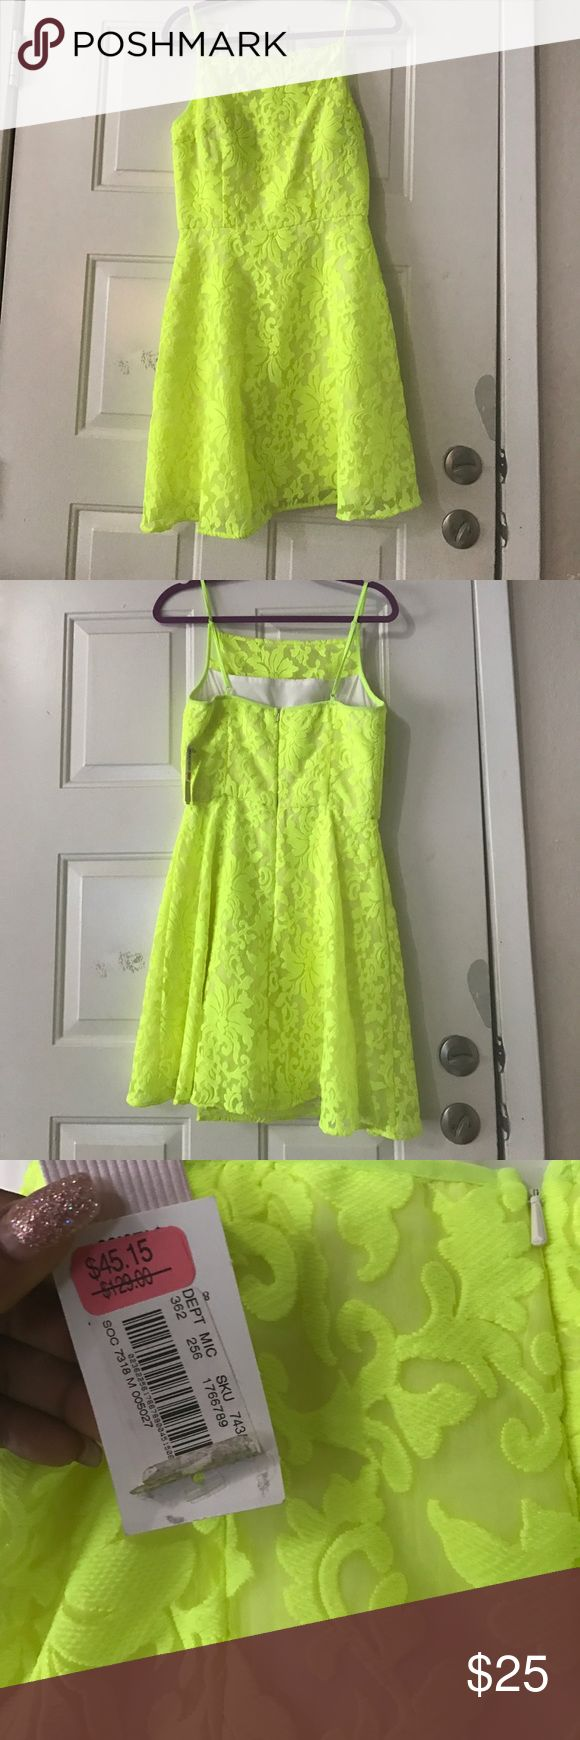 Neon green dress Brand new, no holes, no stains !! GBX Dresses Midi